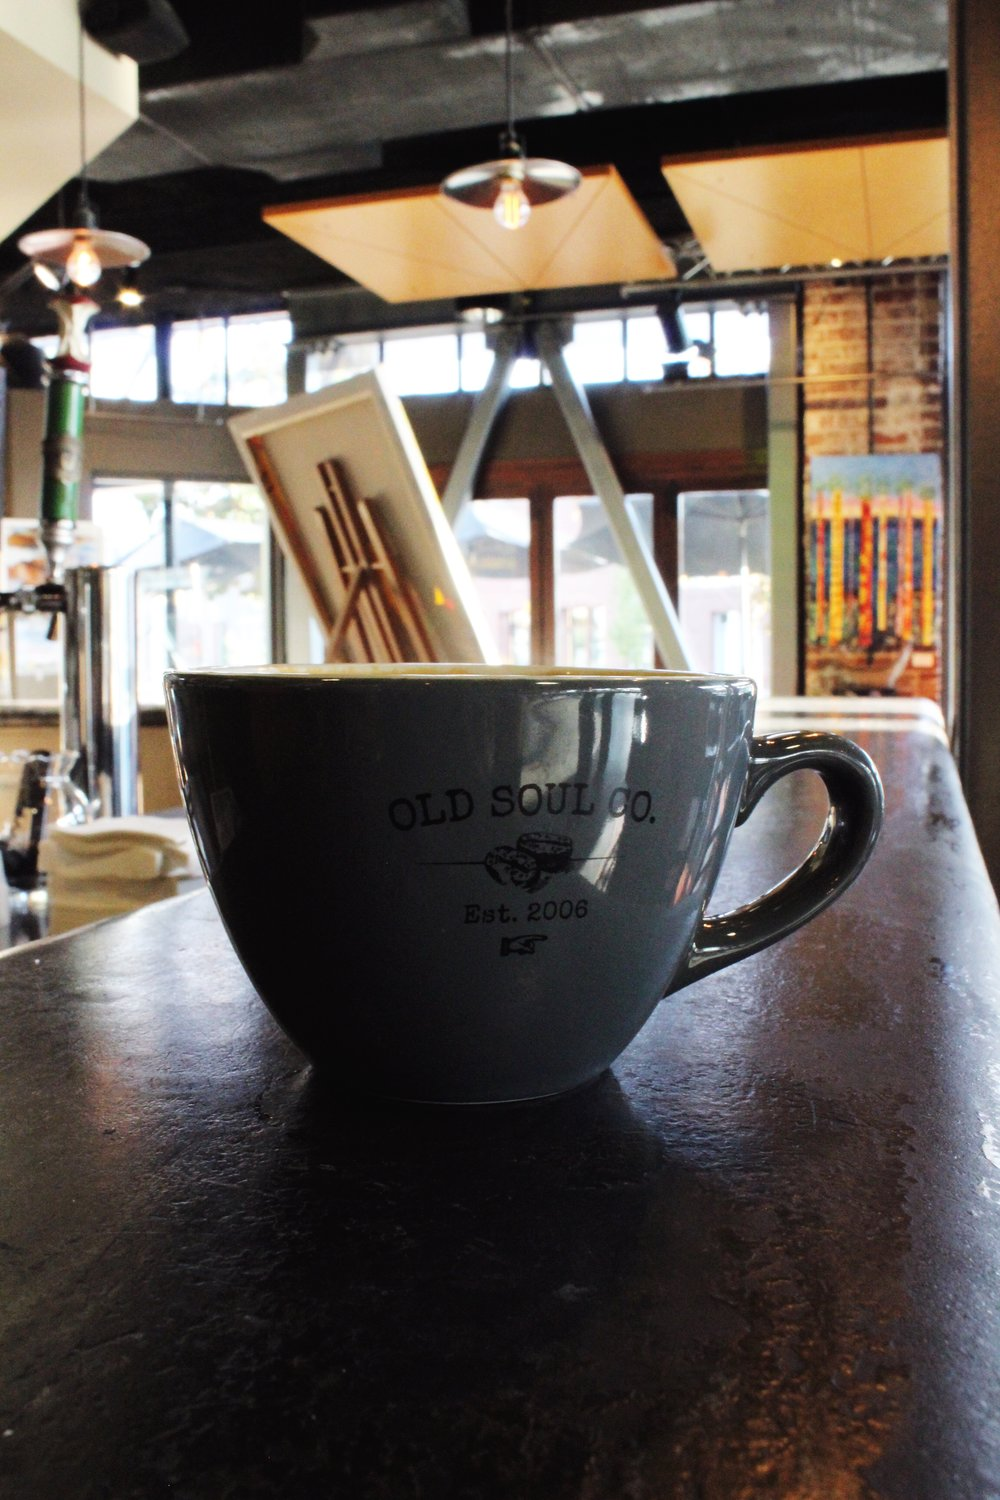 Old Soul Coffee Cup. It was established in 2006. The shop is located in Oak Park Sacramento, California